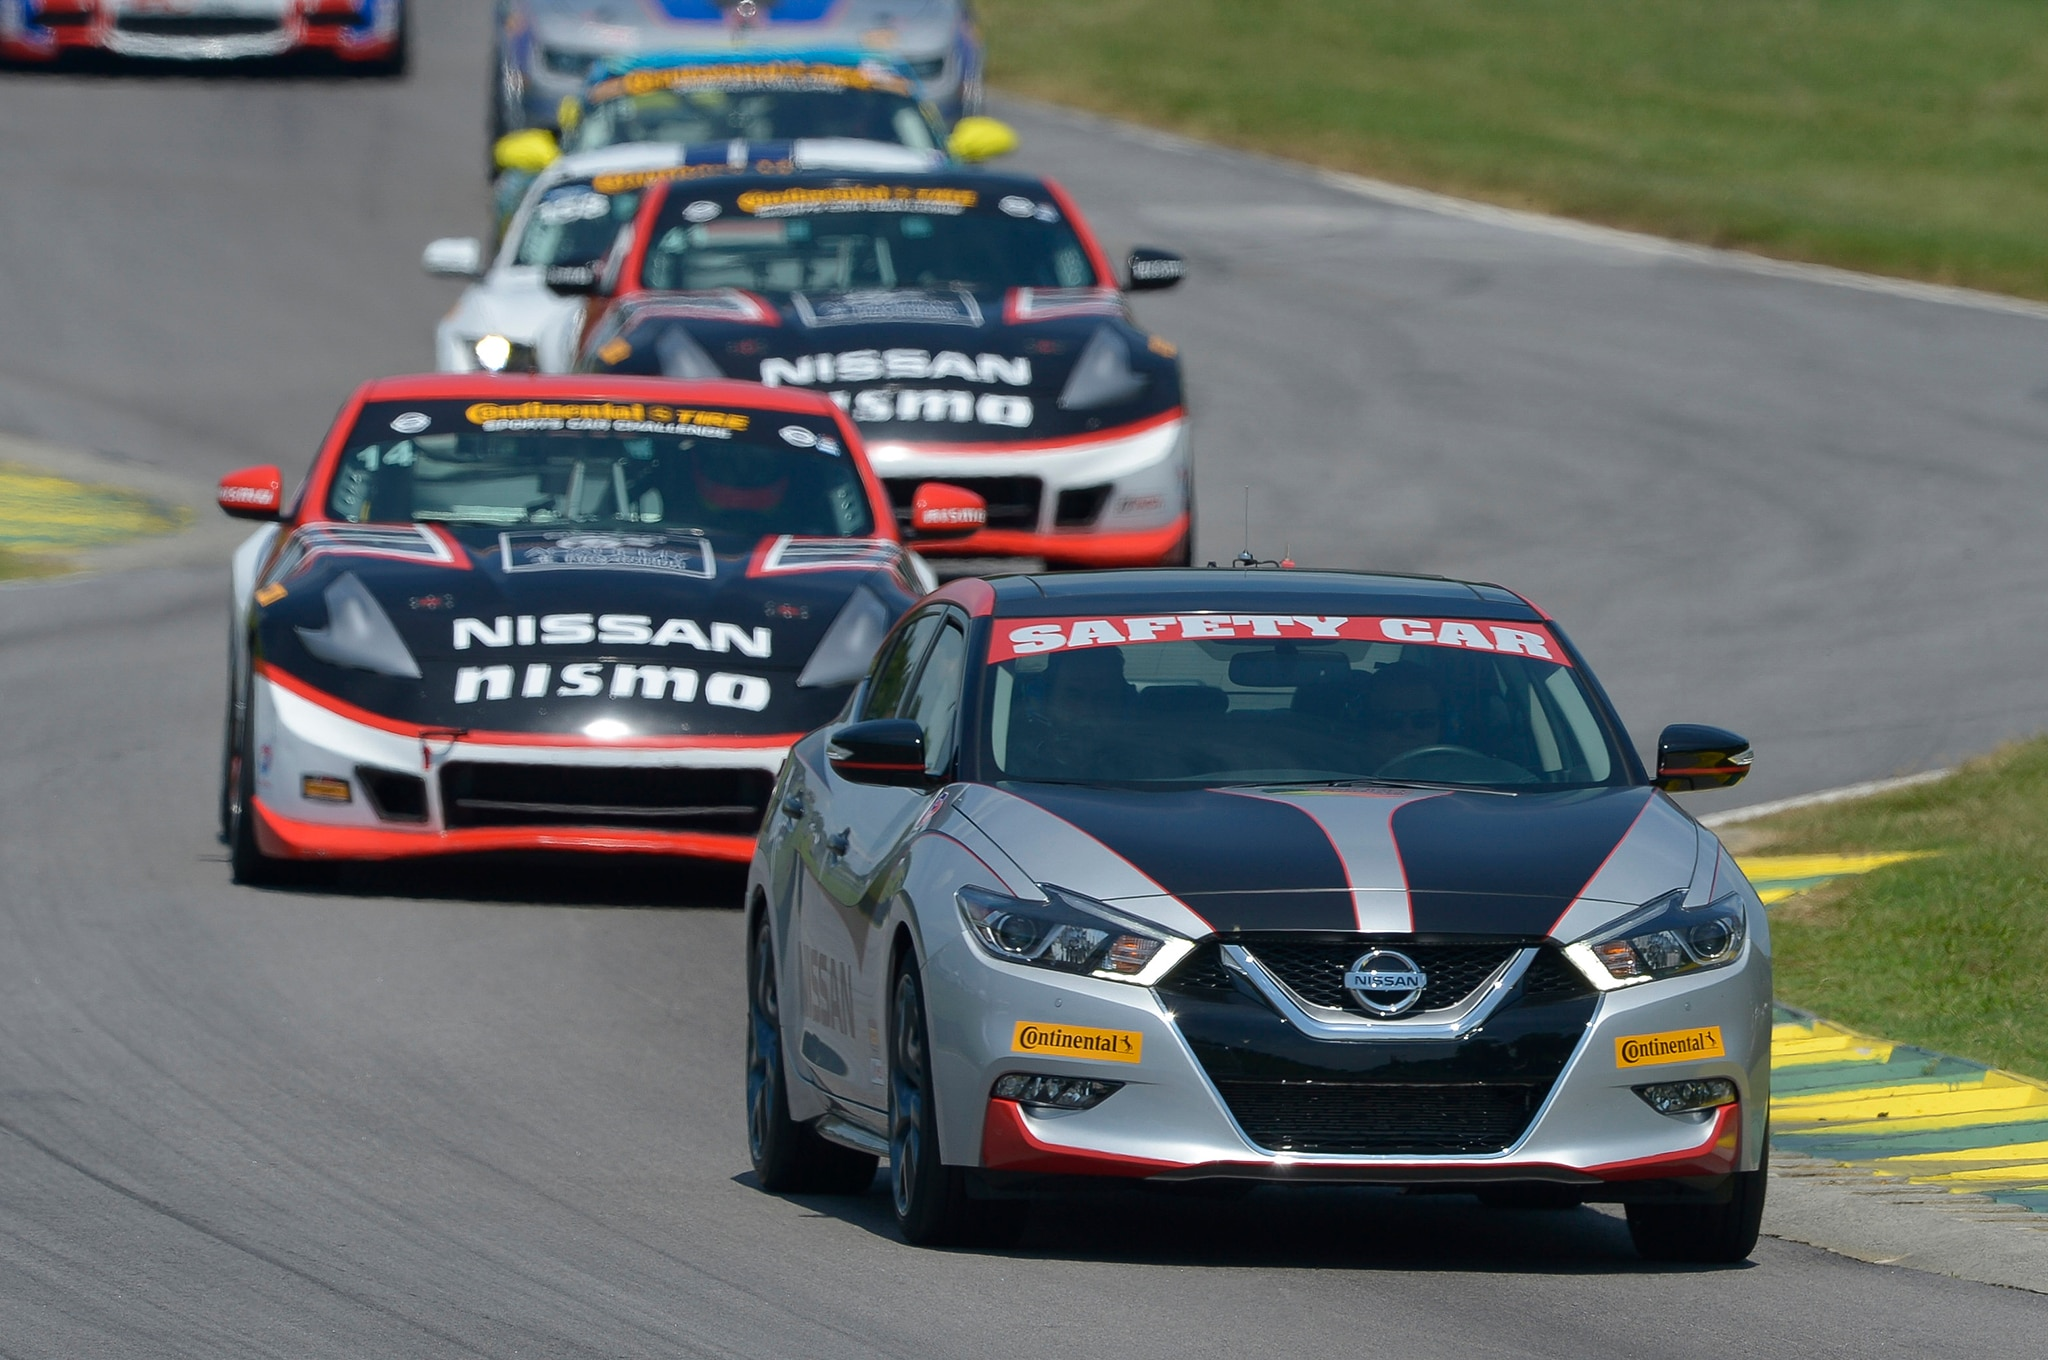 2016 Maxima Nismo >> 2016 Nissan Maxima Serves As Safety Car At Vir Cota